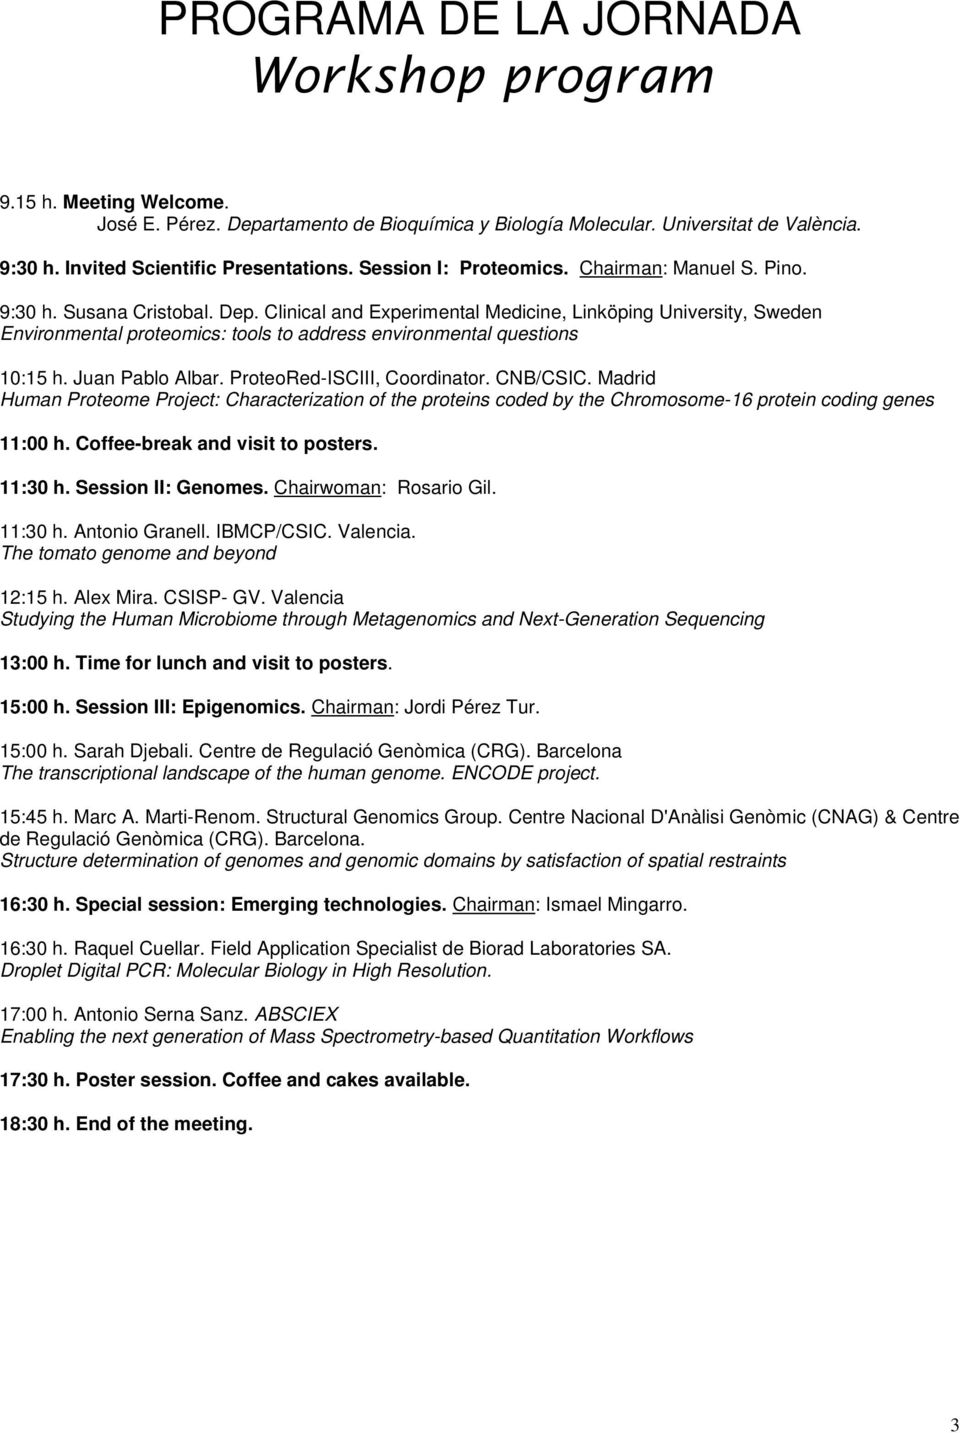 Clinical and Experimental Medicine, Linköping University, Sweden Environmental proteomics: tools to address environmental questions 10:15 h. Juan Pablo Albar. ProteoRed-ISCIII, Coordinator. CNB/CSIC.